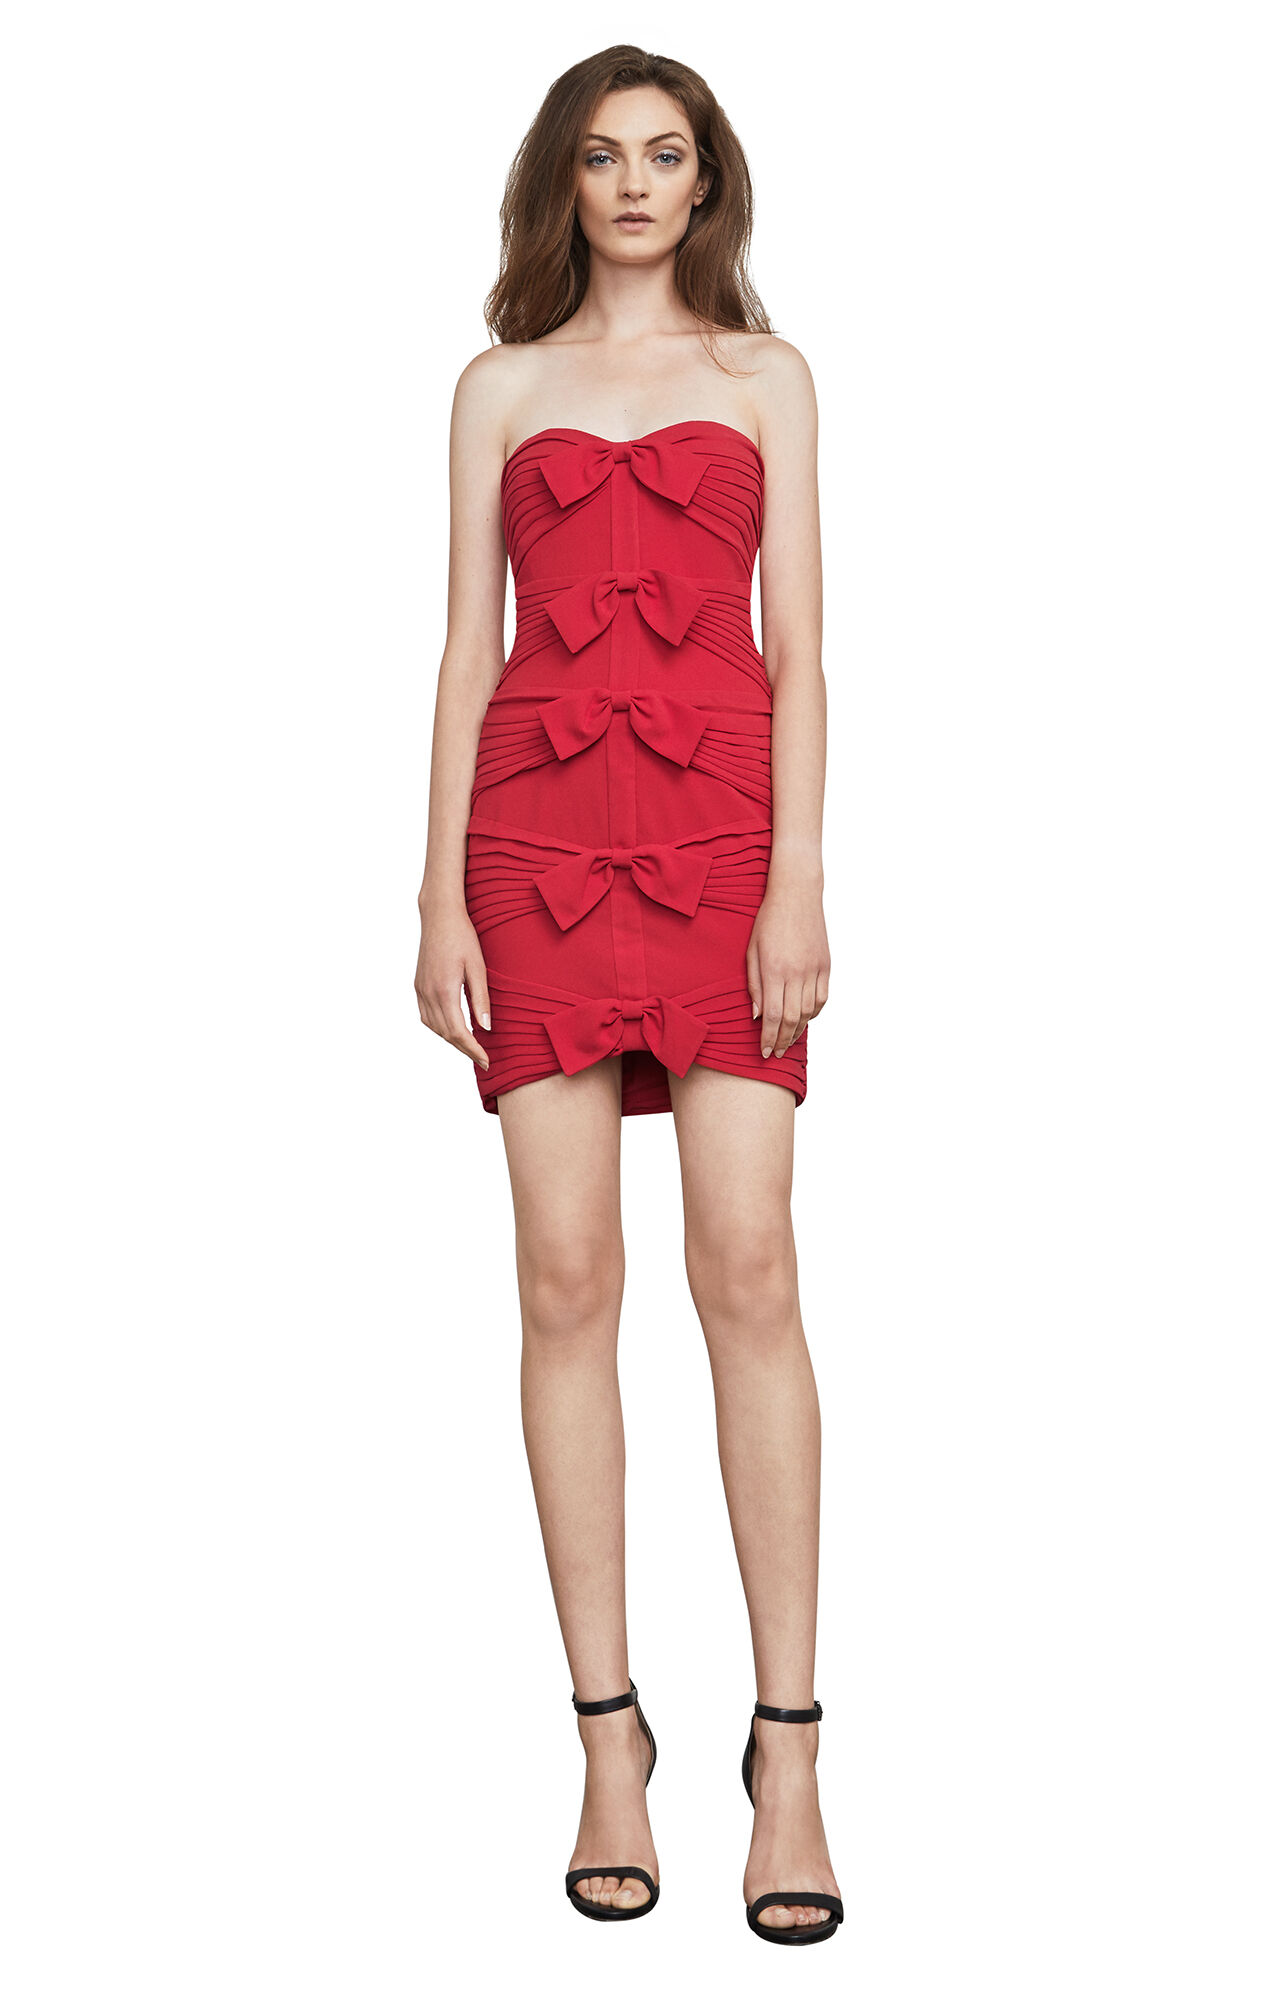 Sabrinna Strapless Bow-Tie Dress